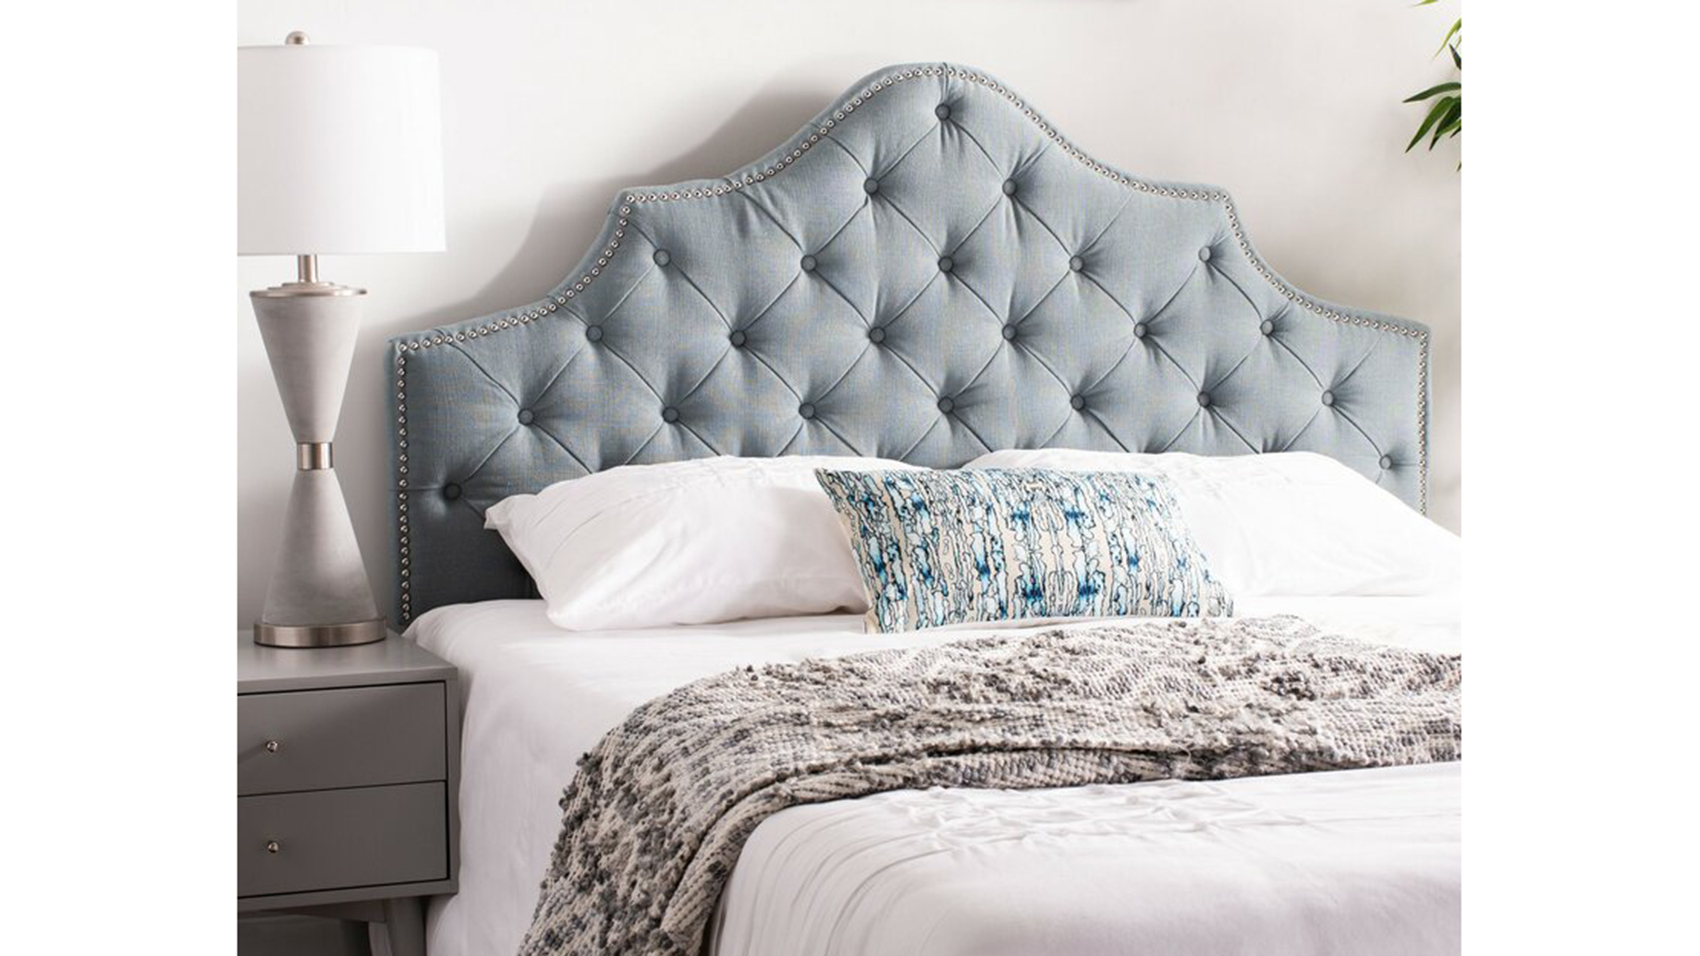 Best Headboards Gorgeous Picks From Wayfair Urban Outfitters And More Cnn Underscored